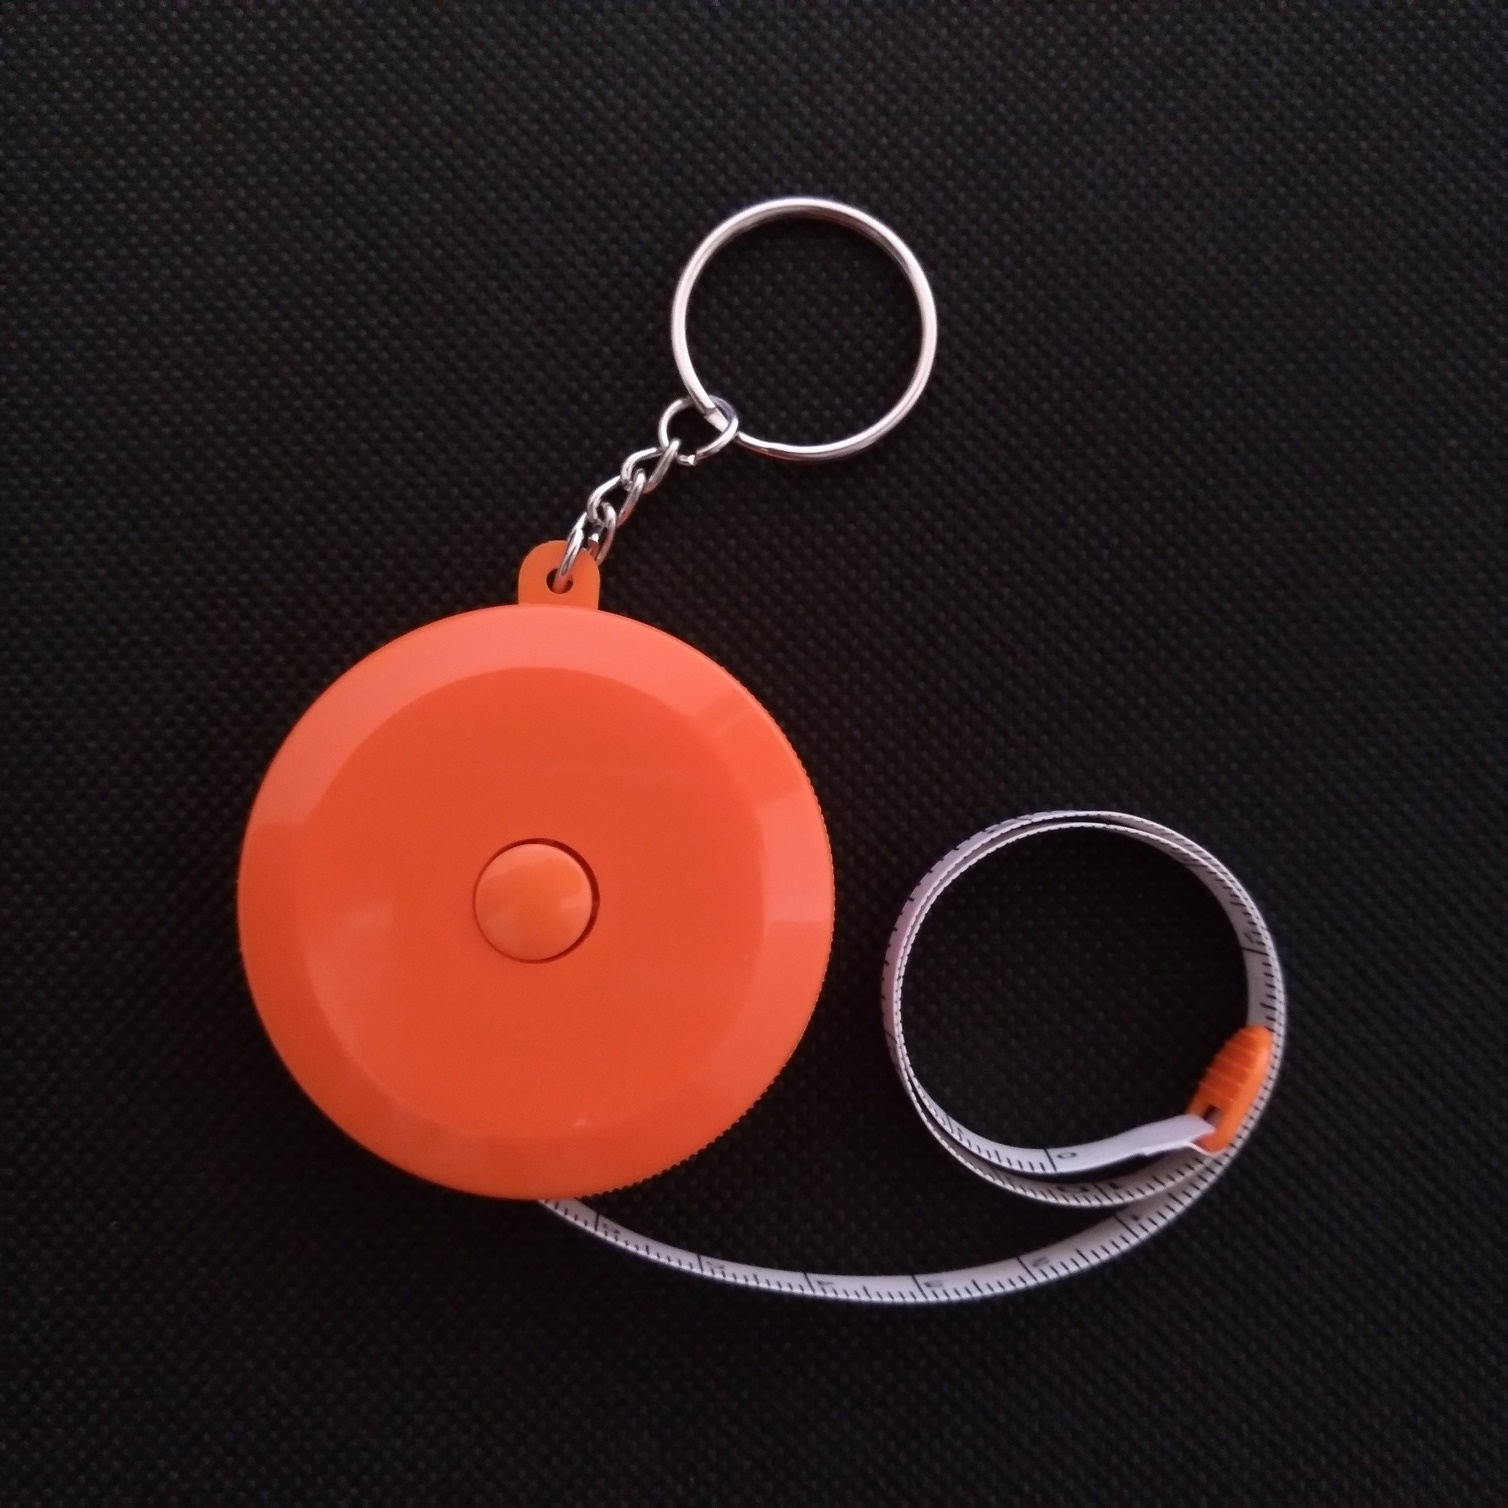 Keychain plastic tape measure for business gift